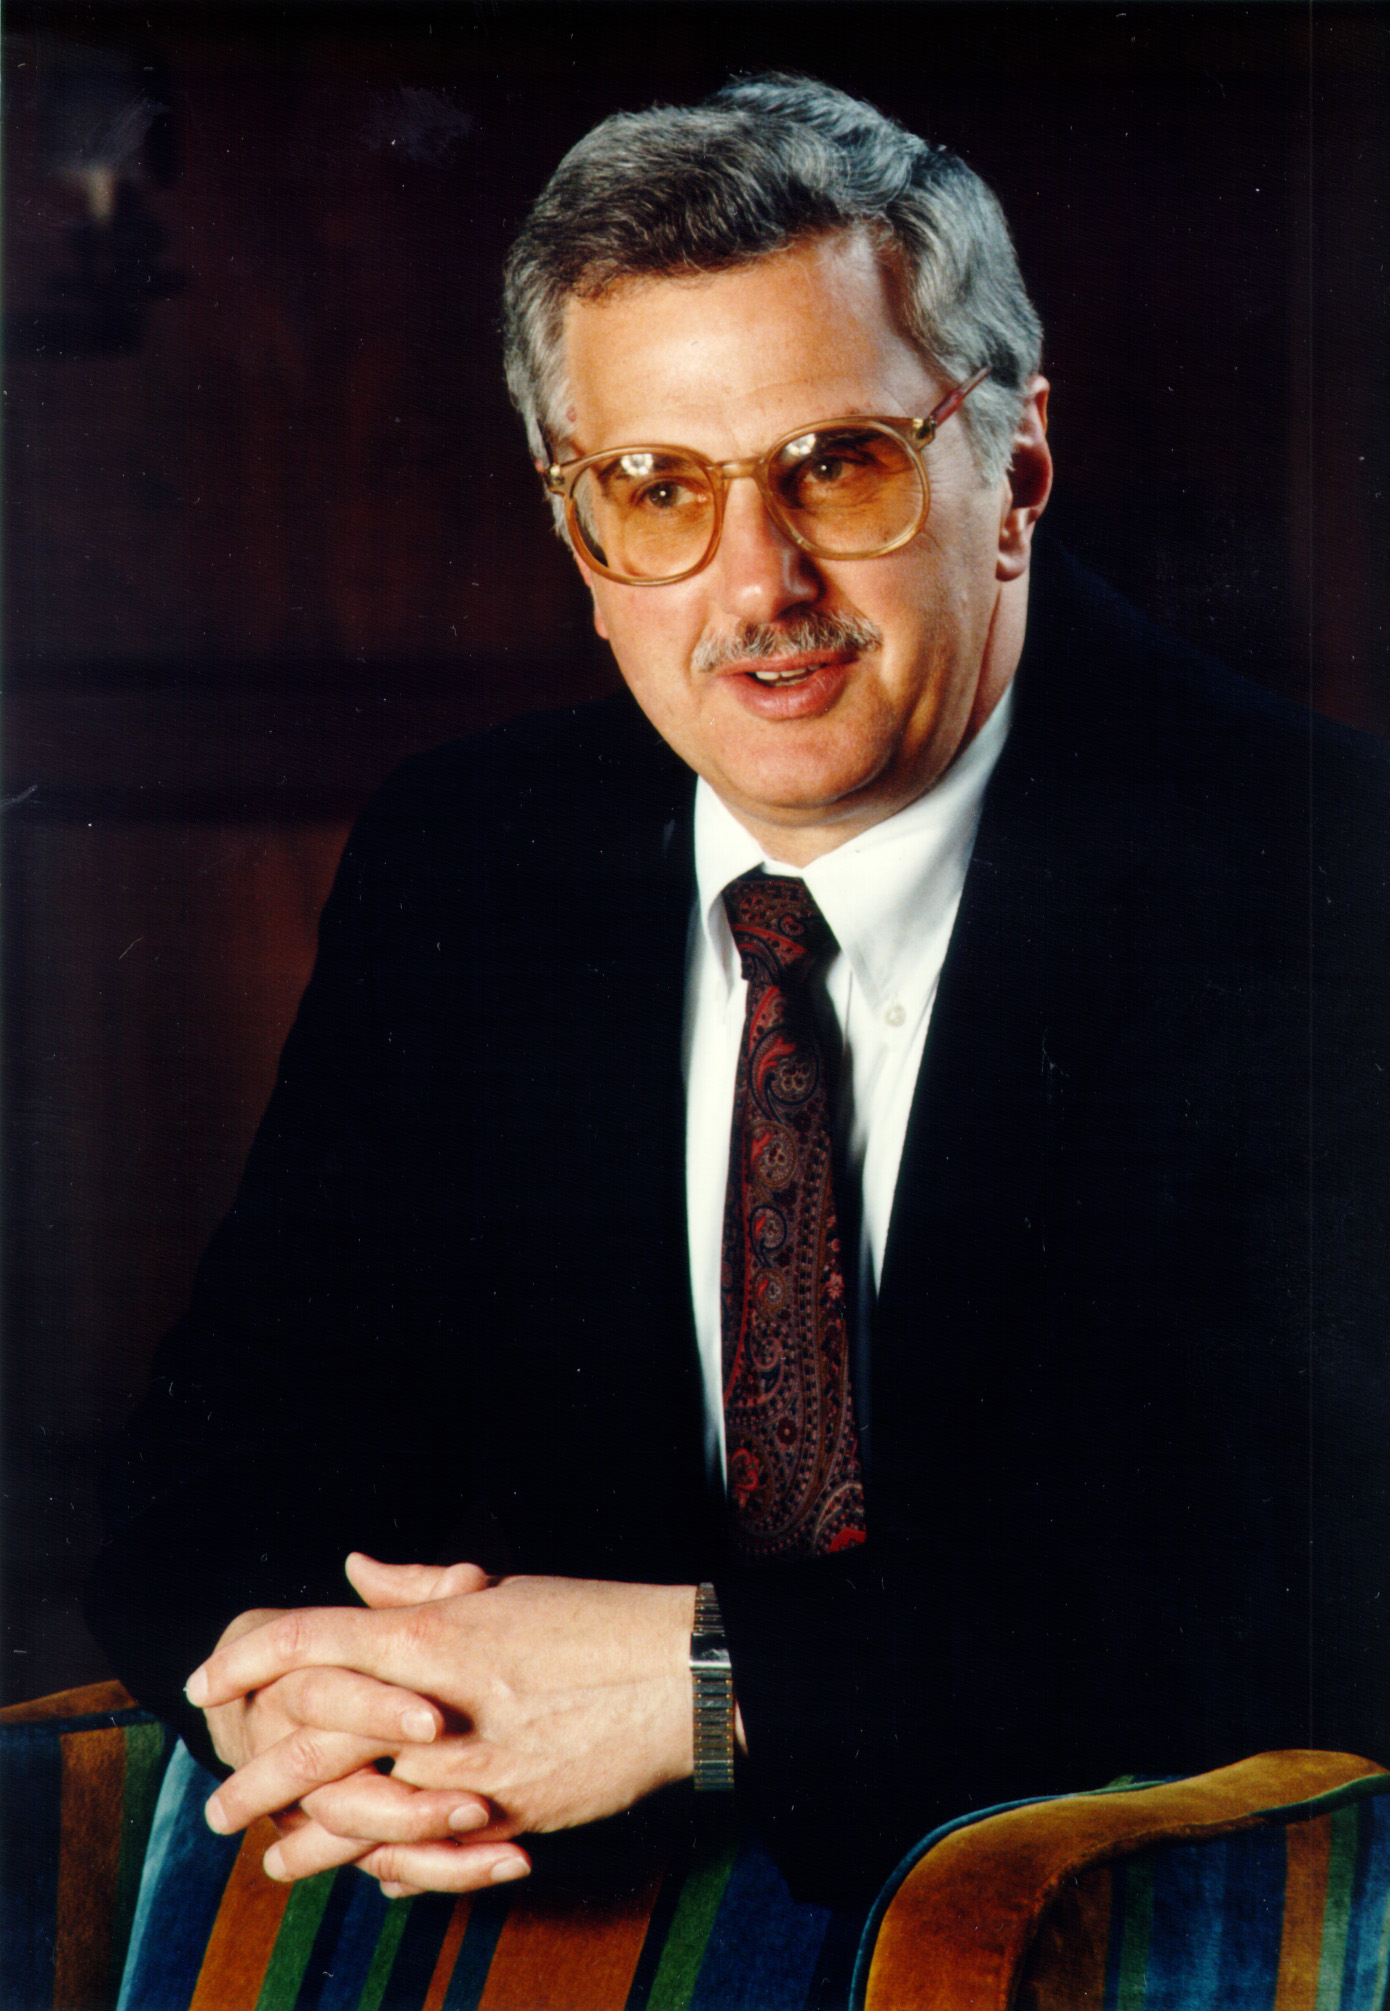 Dr bruce alberts president of the national academy of sciences